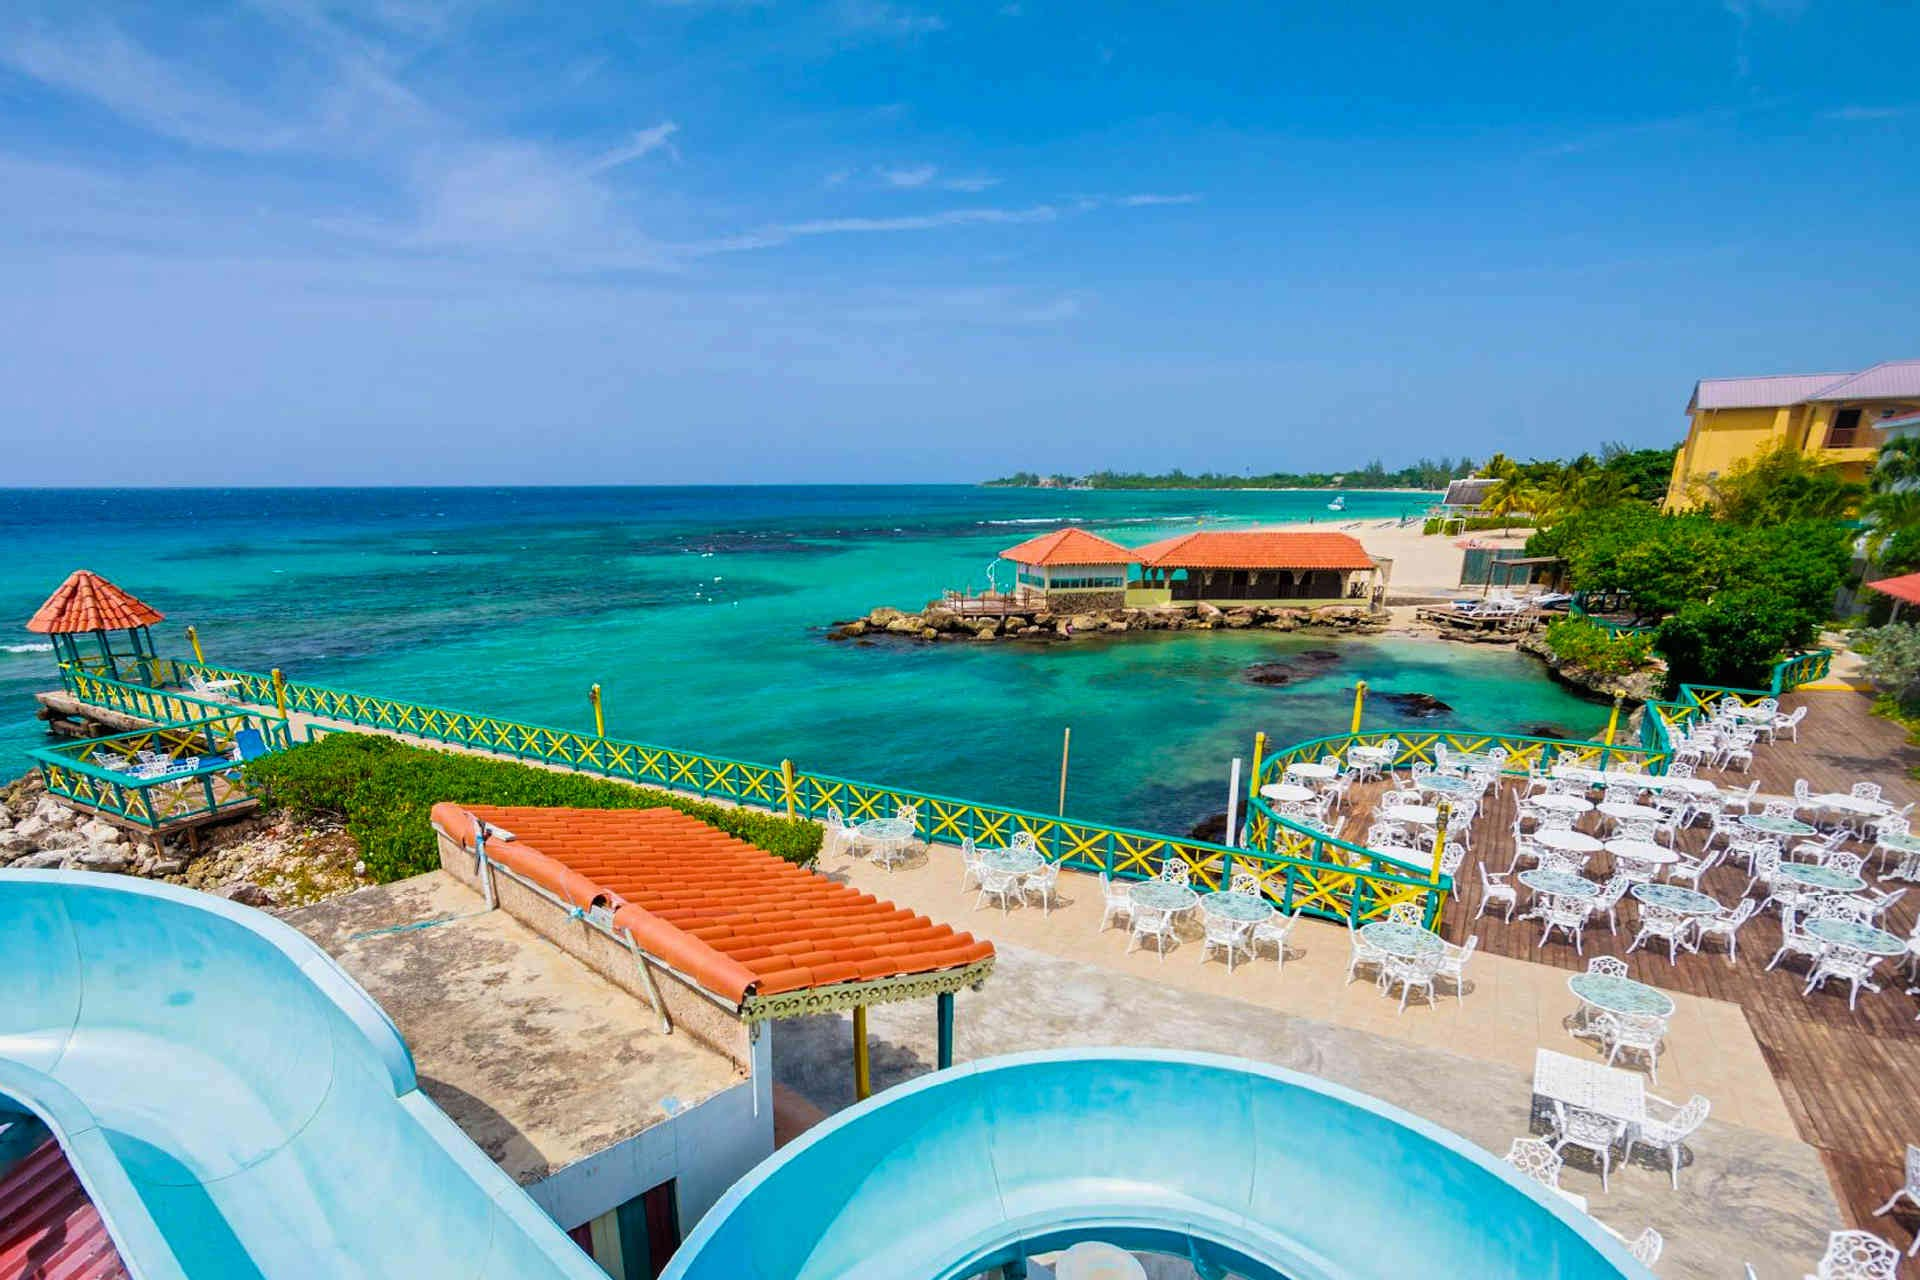 18 Best Caribbean AllInclusive Resorts for Families 2020